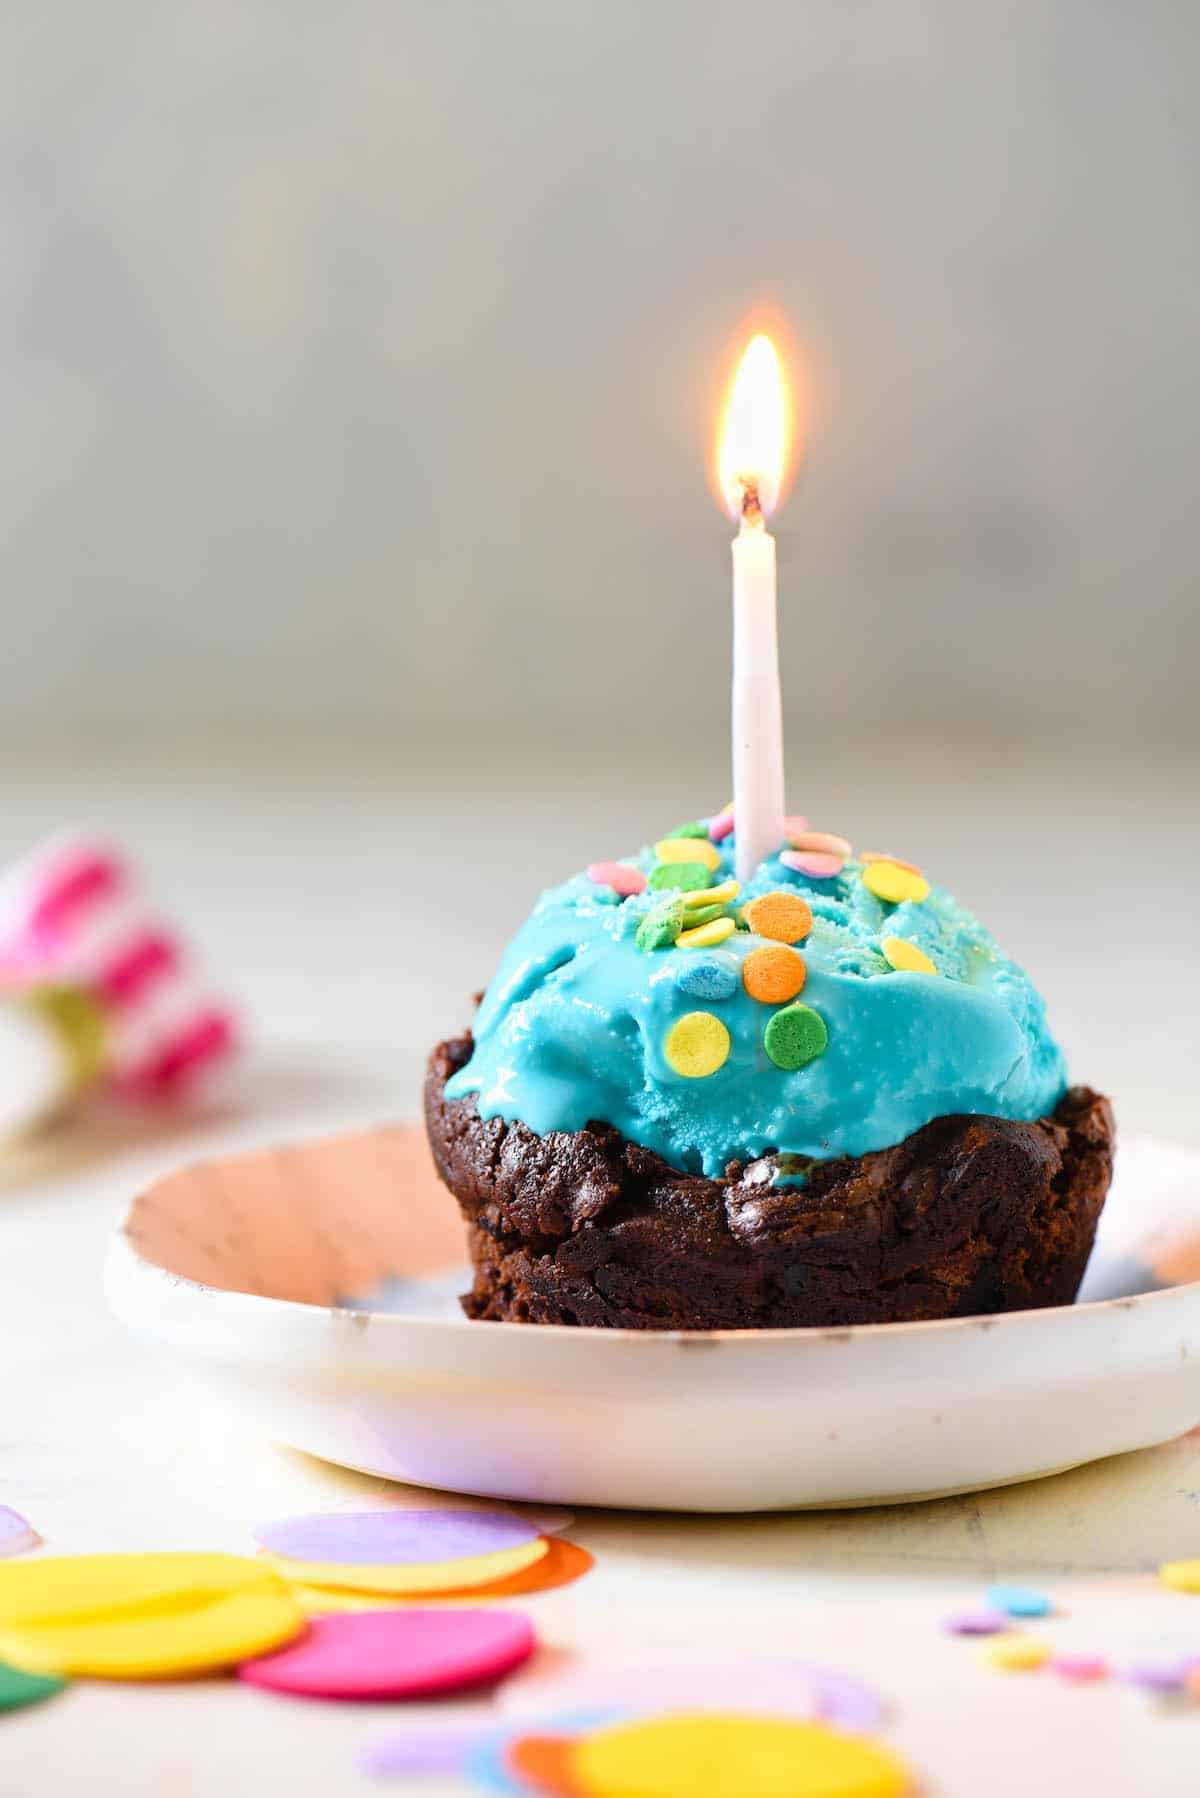 Celebrate one sweet birthday with these Brownie Bowls for Ice Cream. No special equipment needed - they're made in a cupcake pan!   foxeslovelemons.com